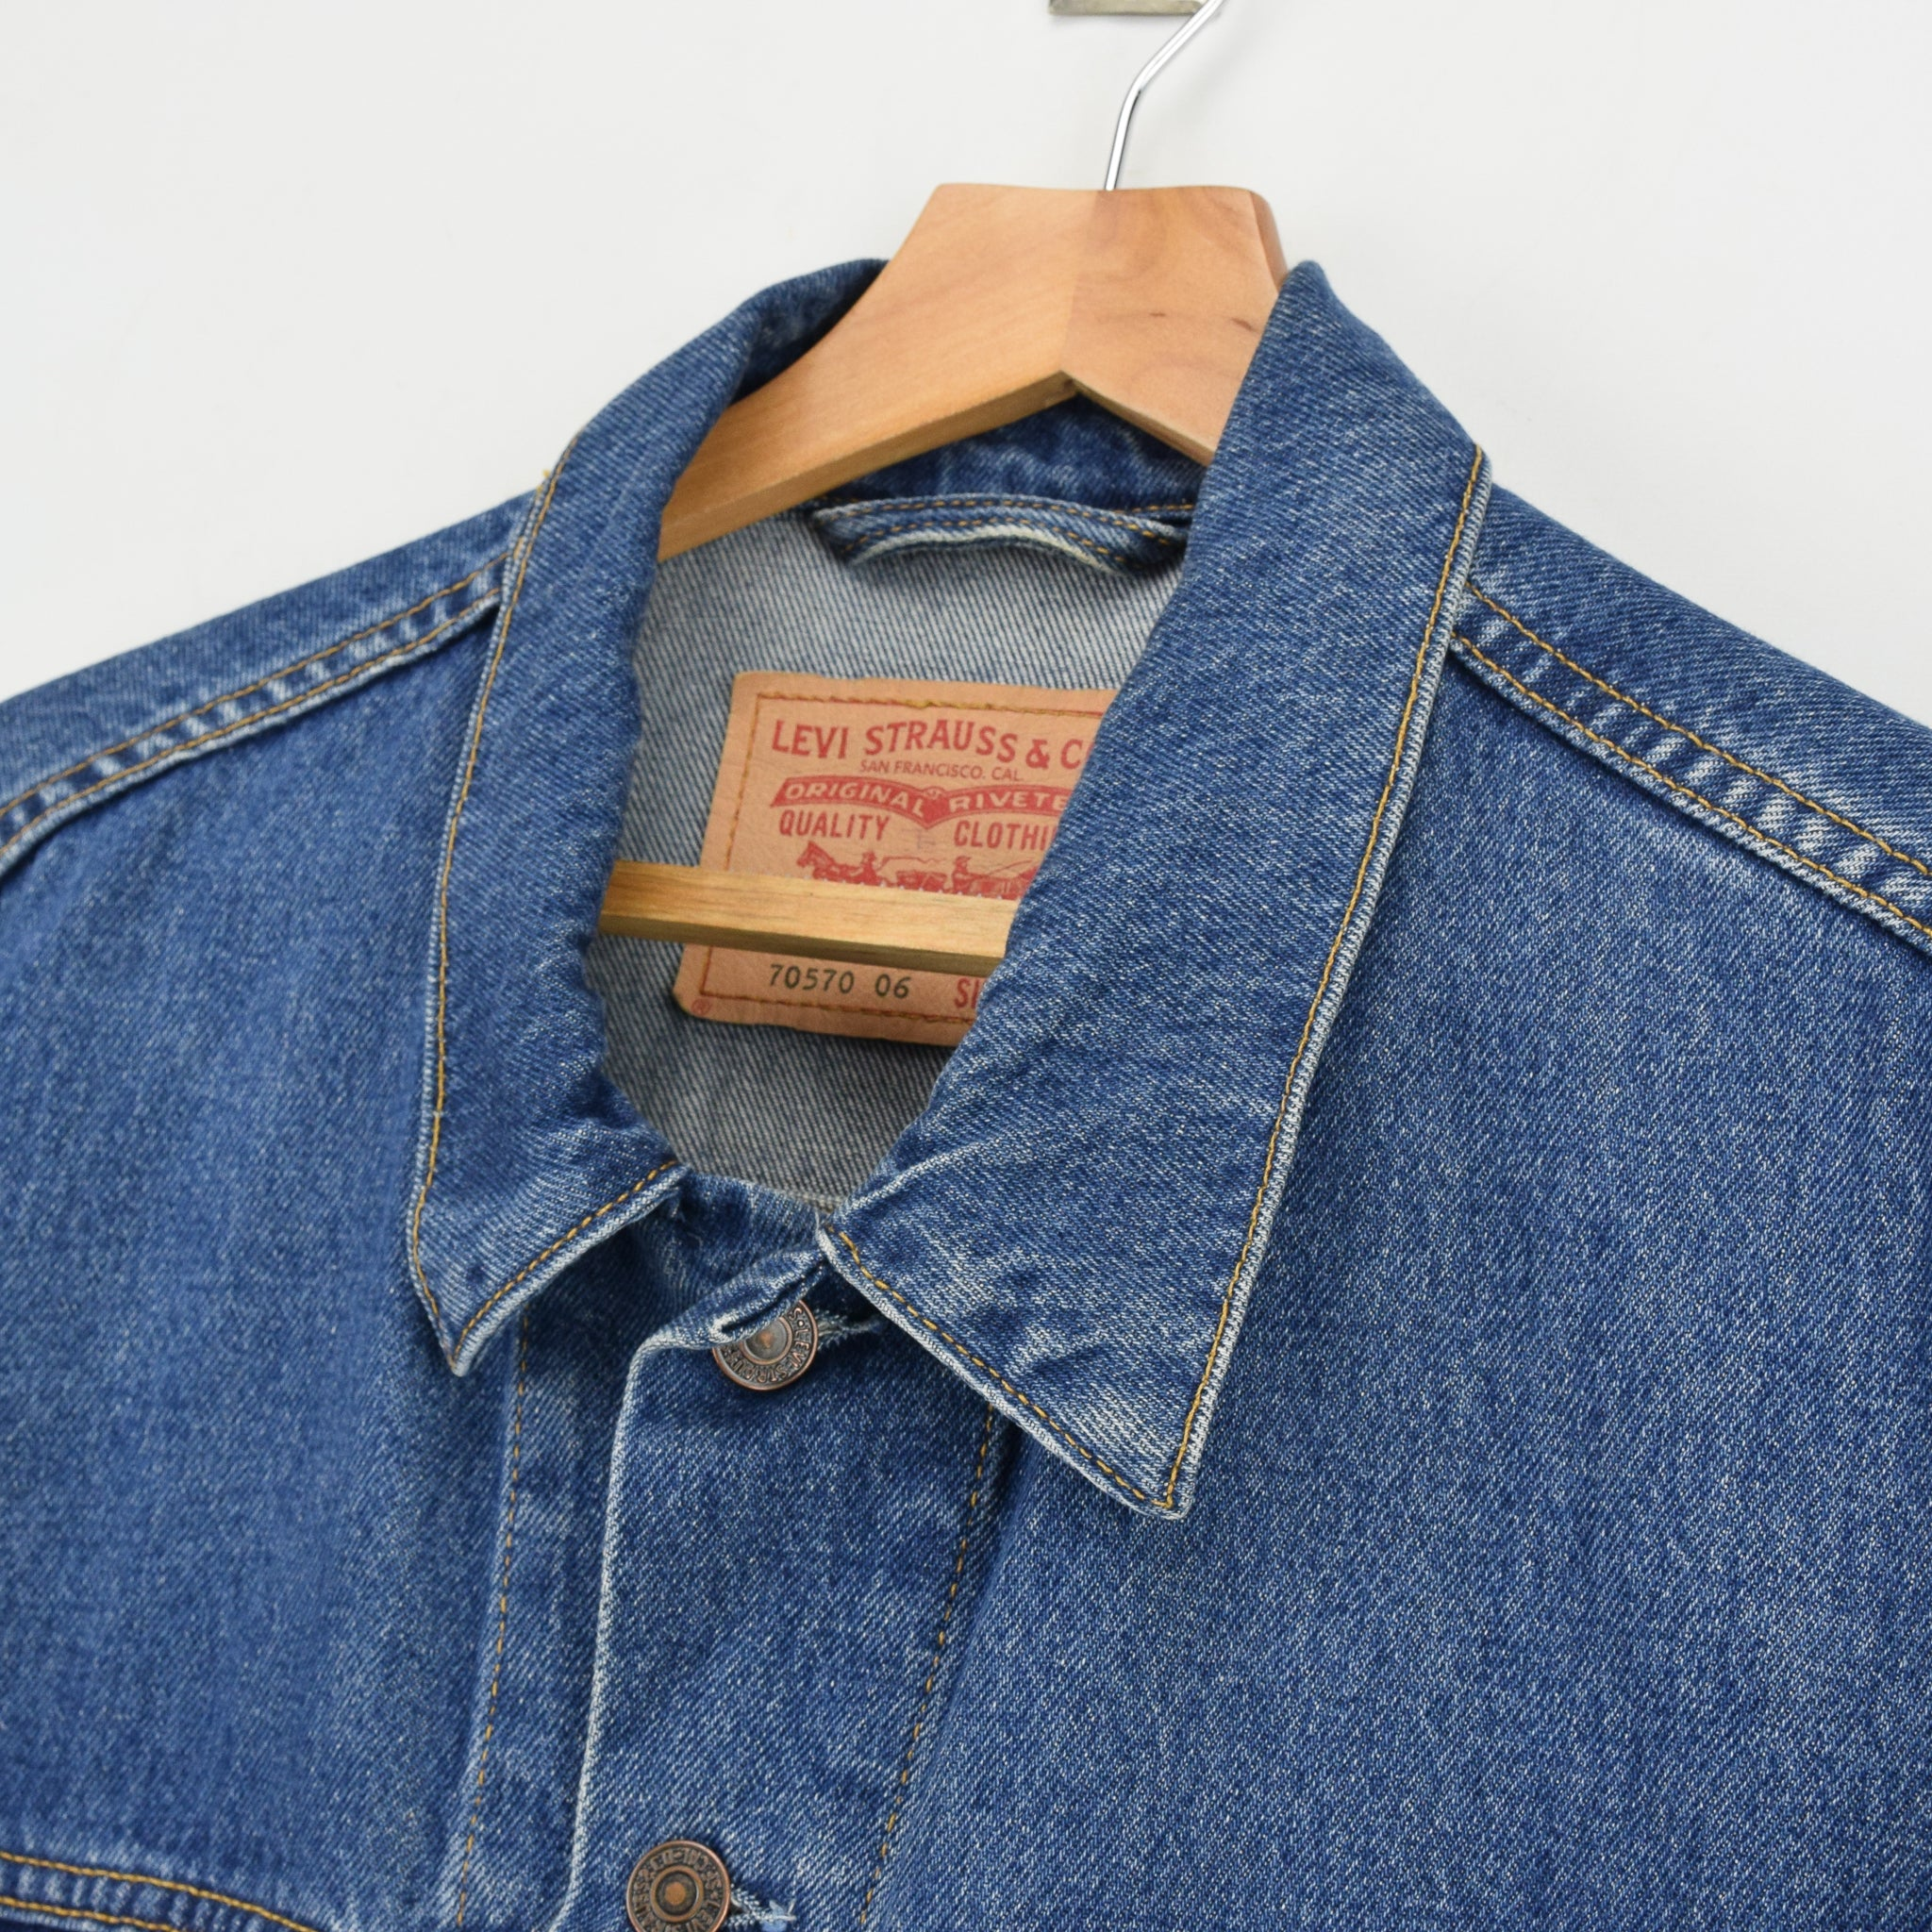 Vintage Levi Red Tab 70570 06 Washed Blue Denim Trucker Western Jacket XL collar